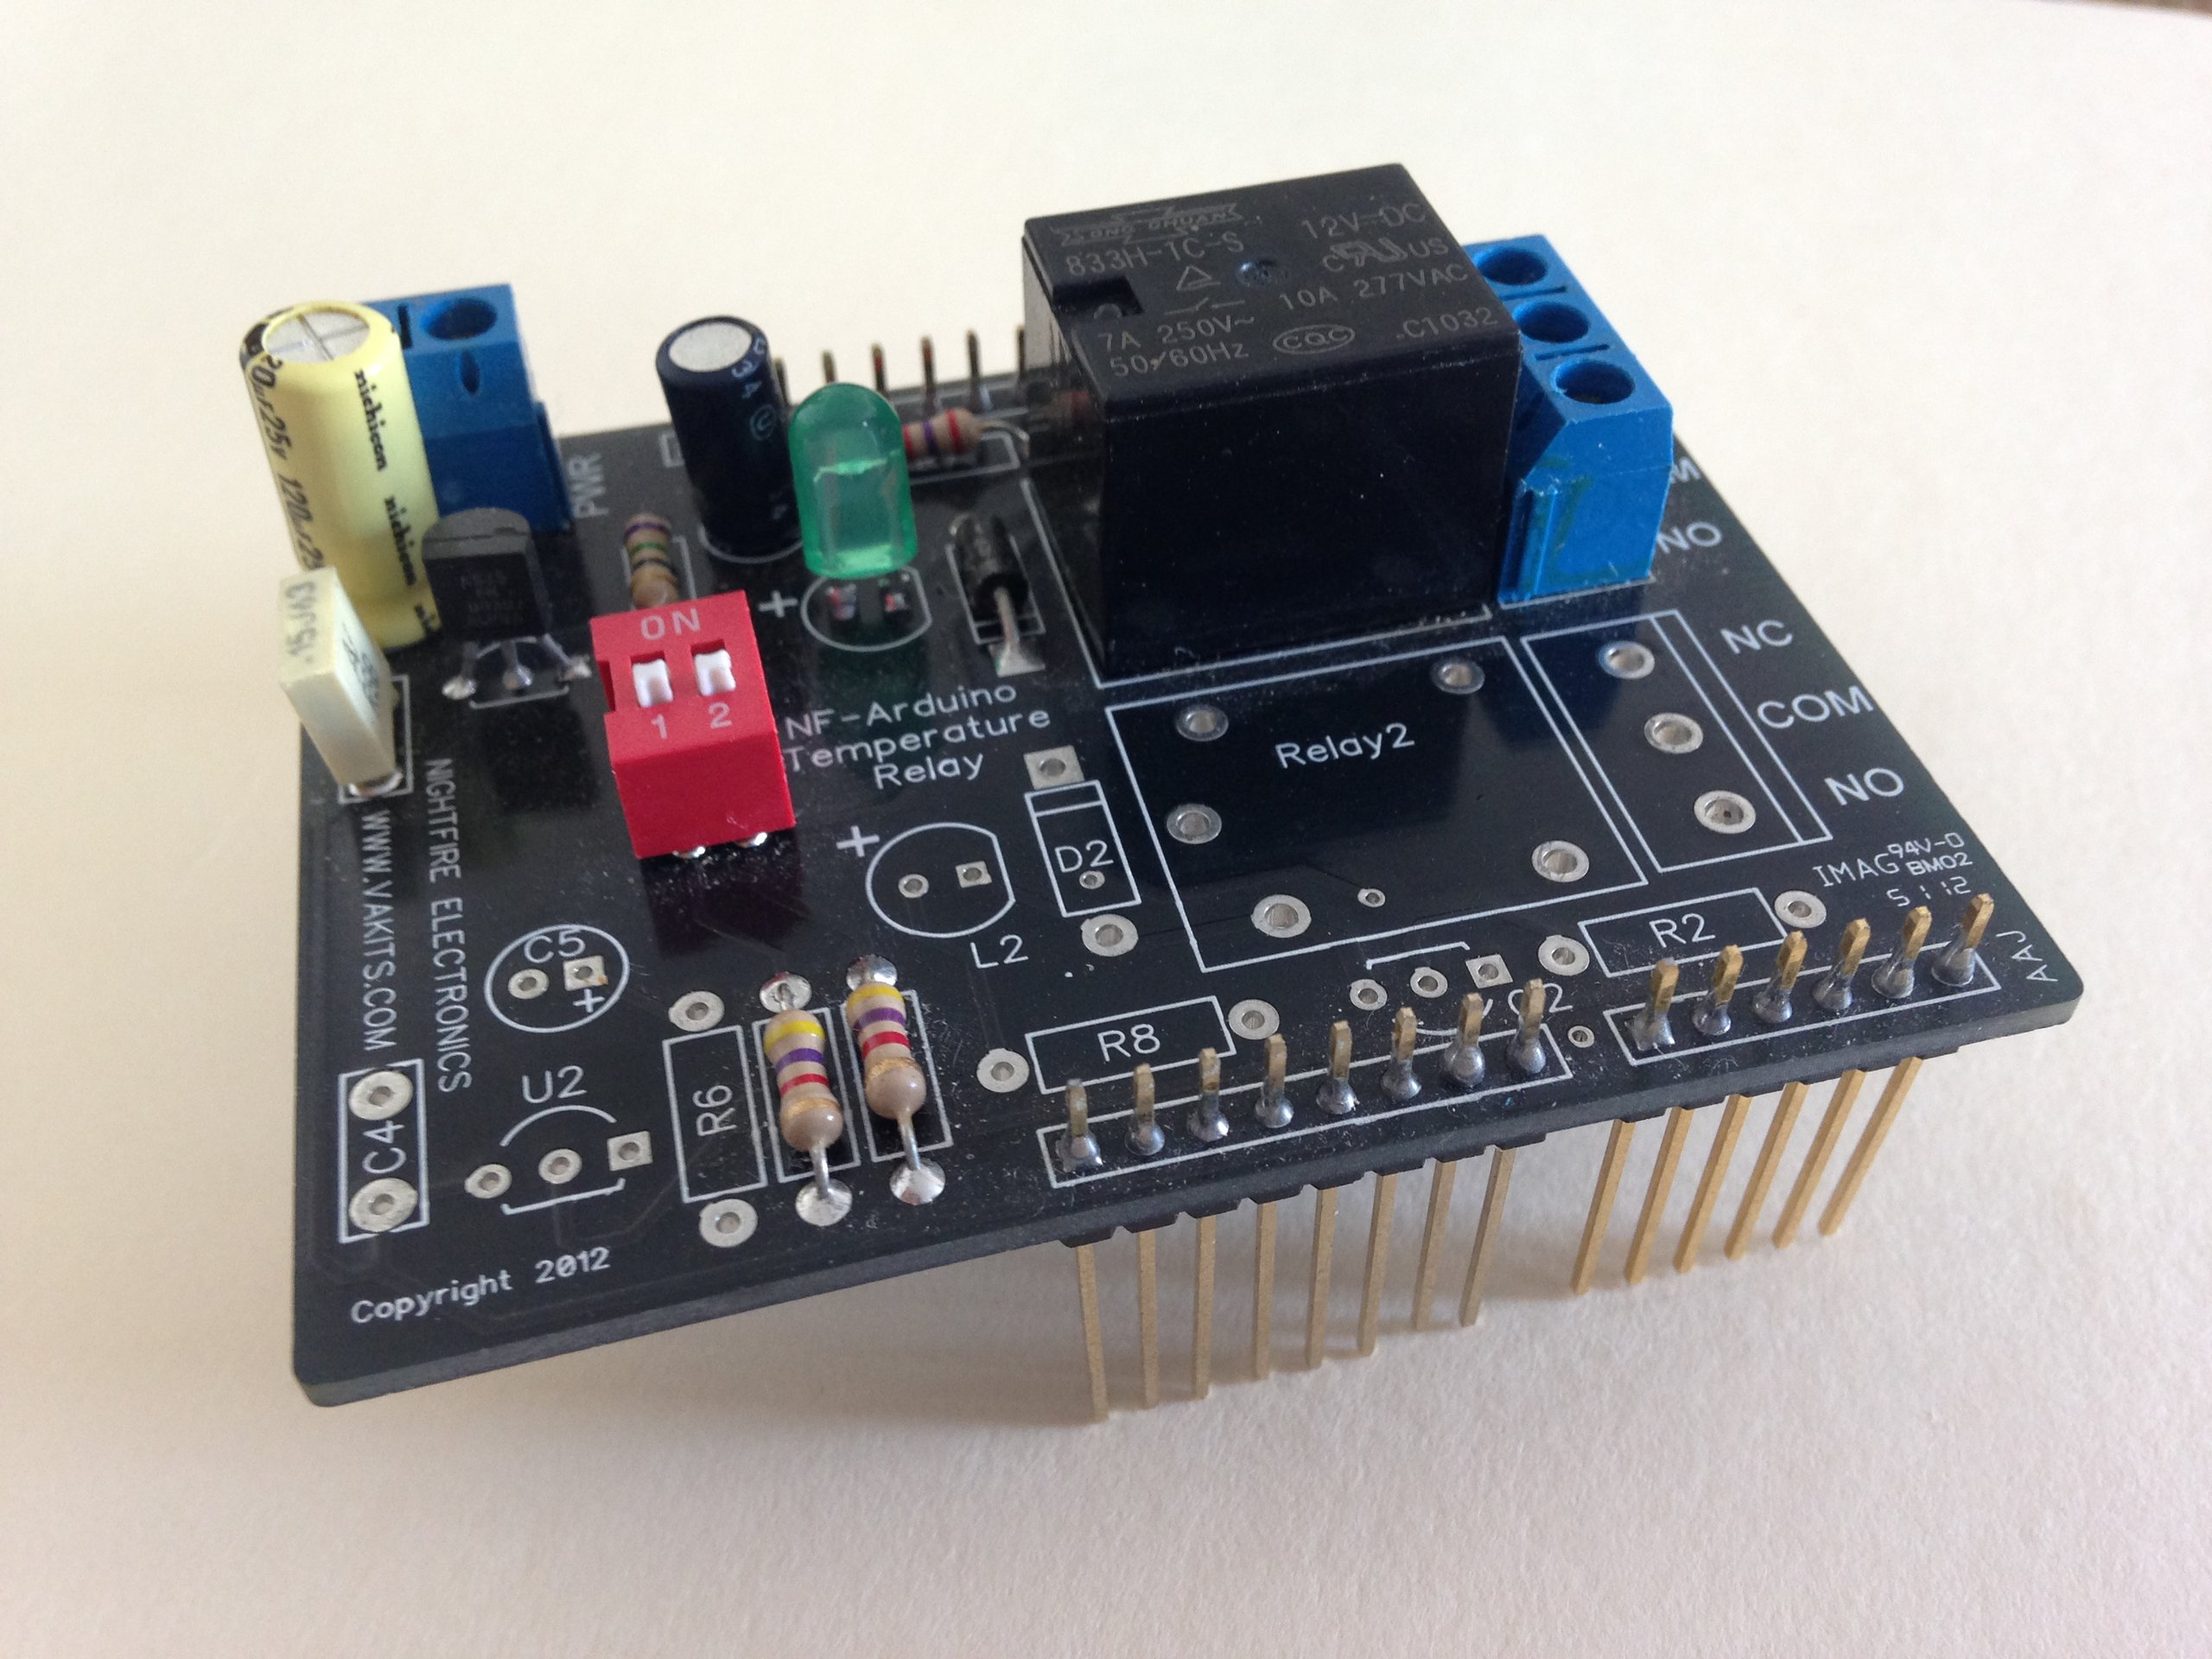 Arduino sensor shield kit photocells from nfceramics on